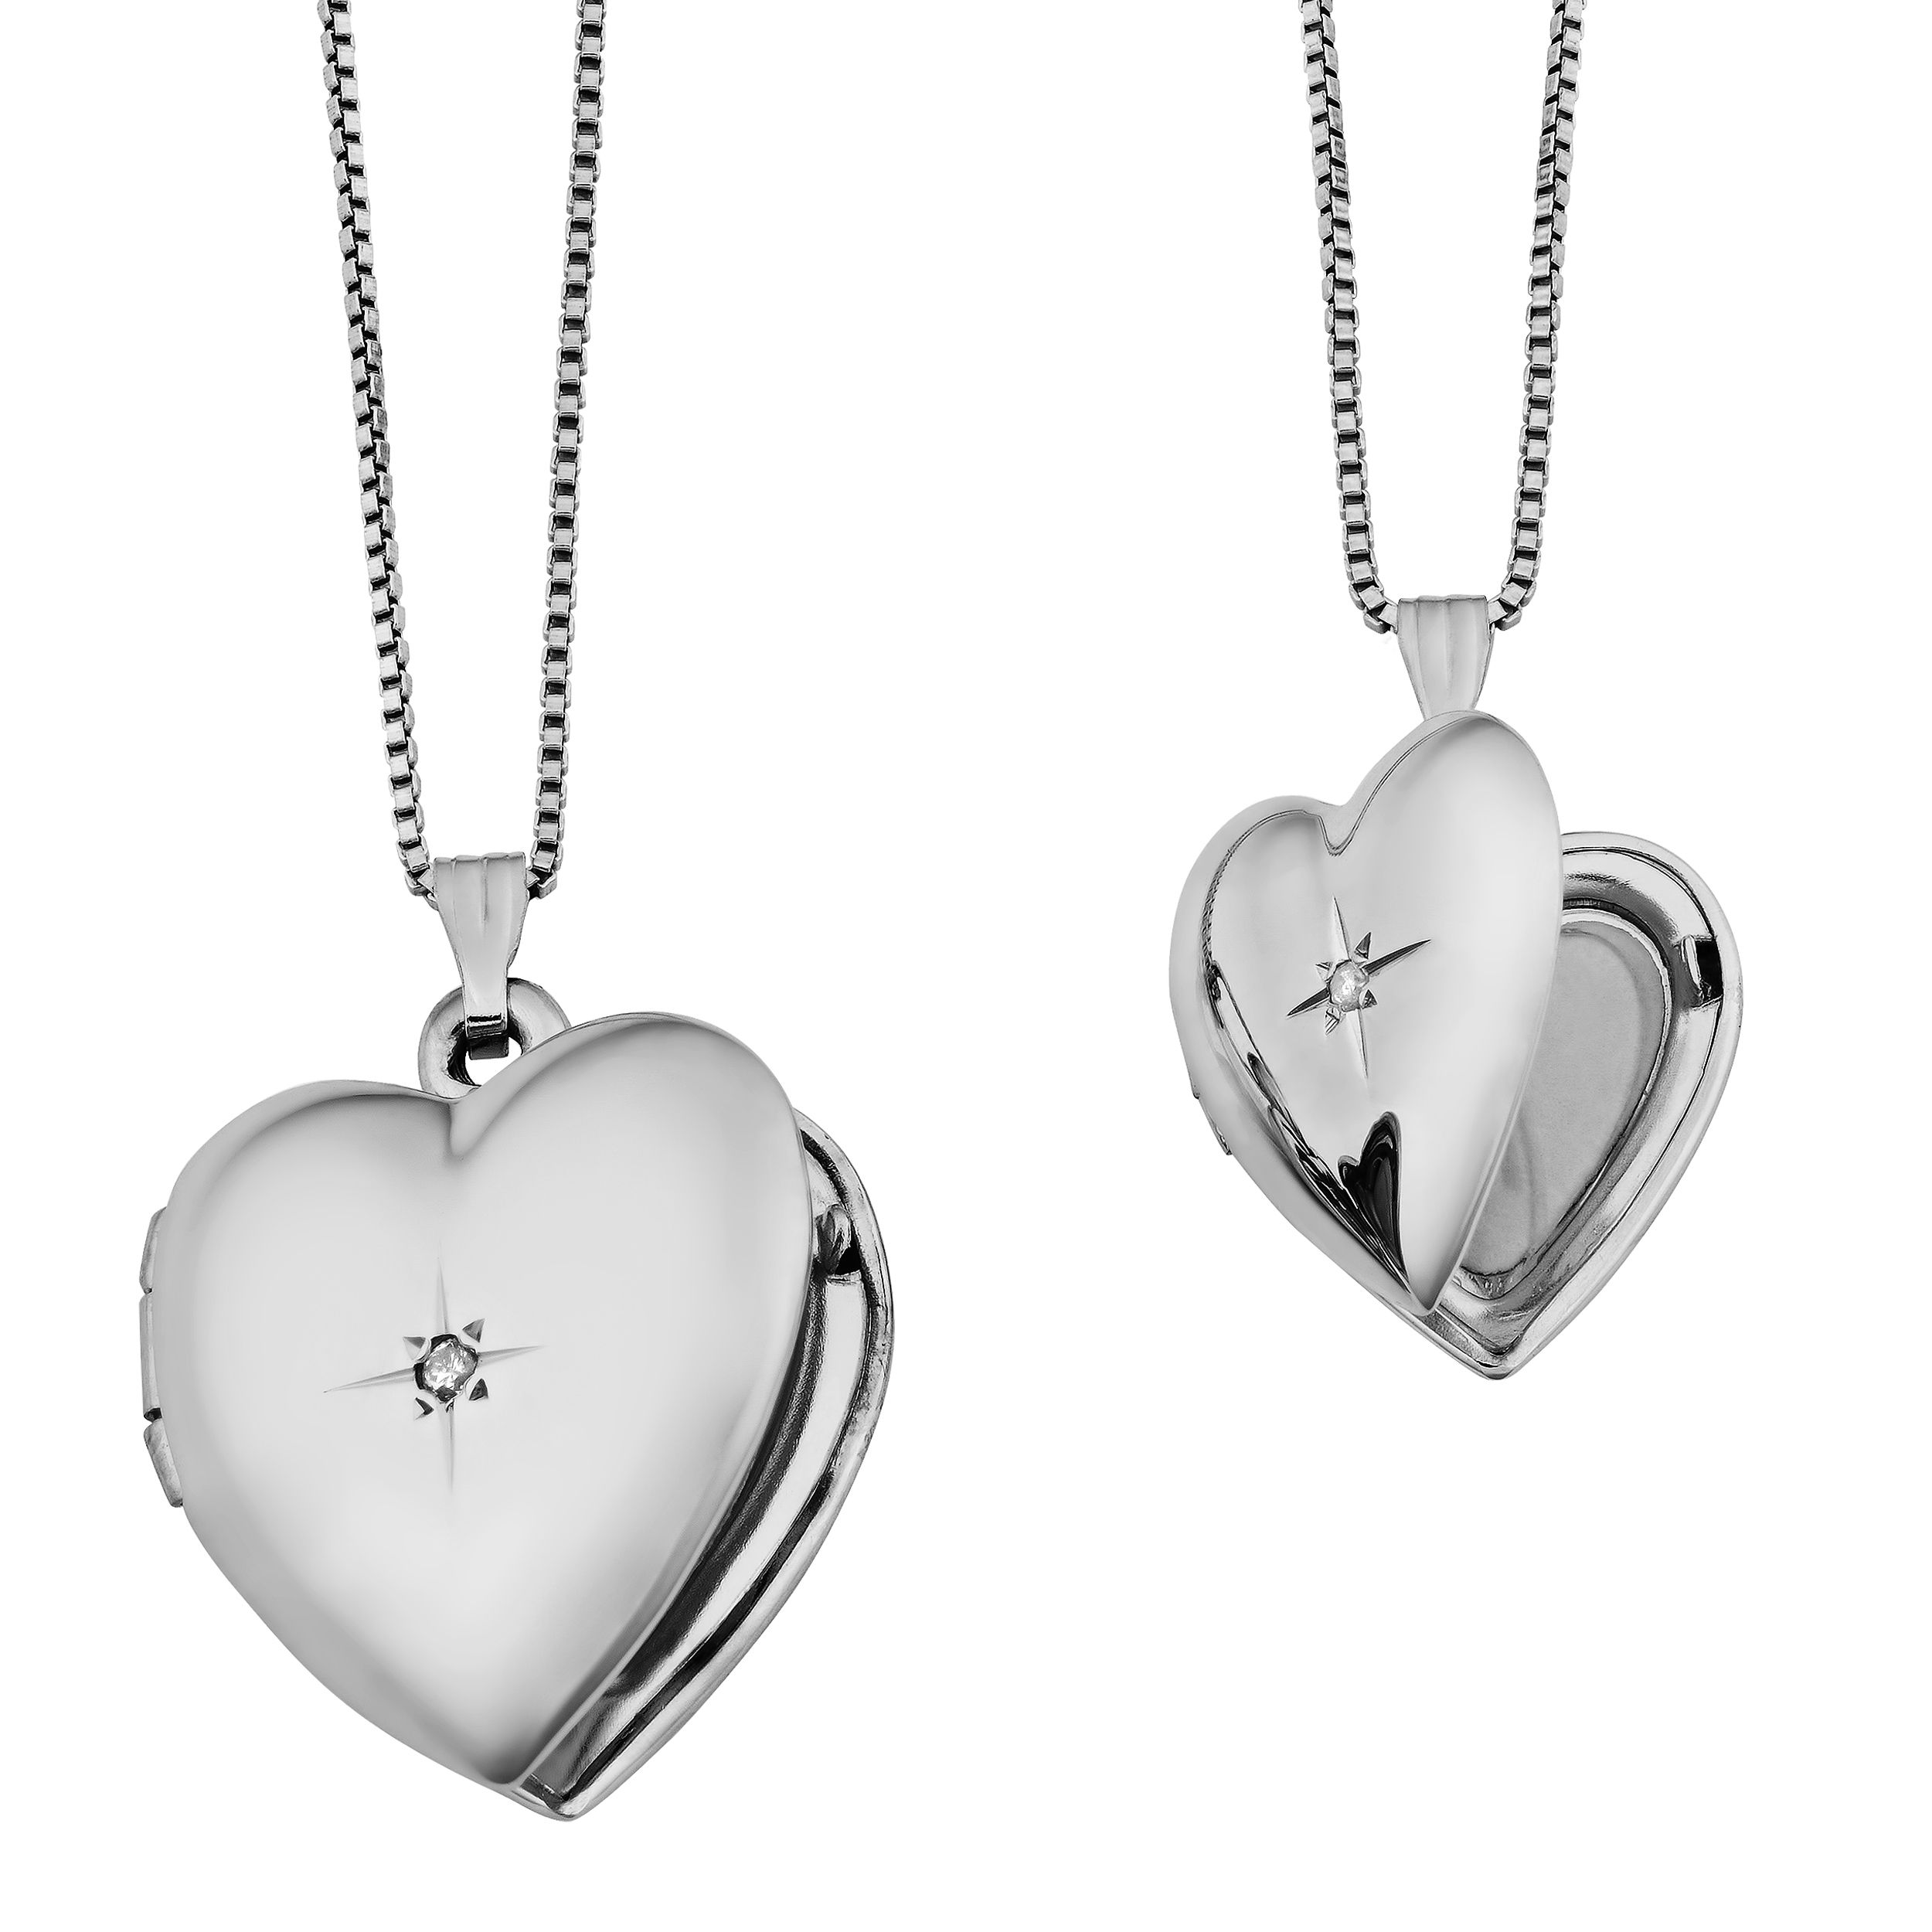 limitless alternate product view size locket lockets necklace necklaces small os heart